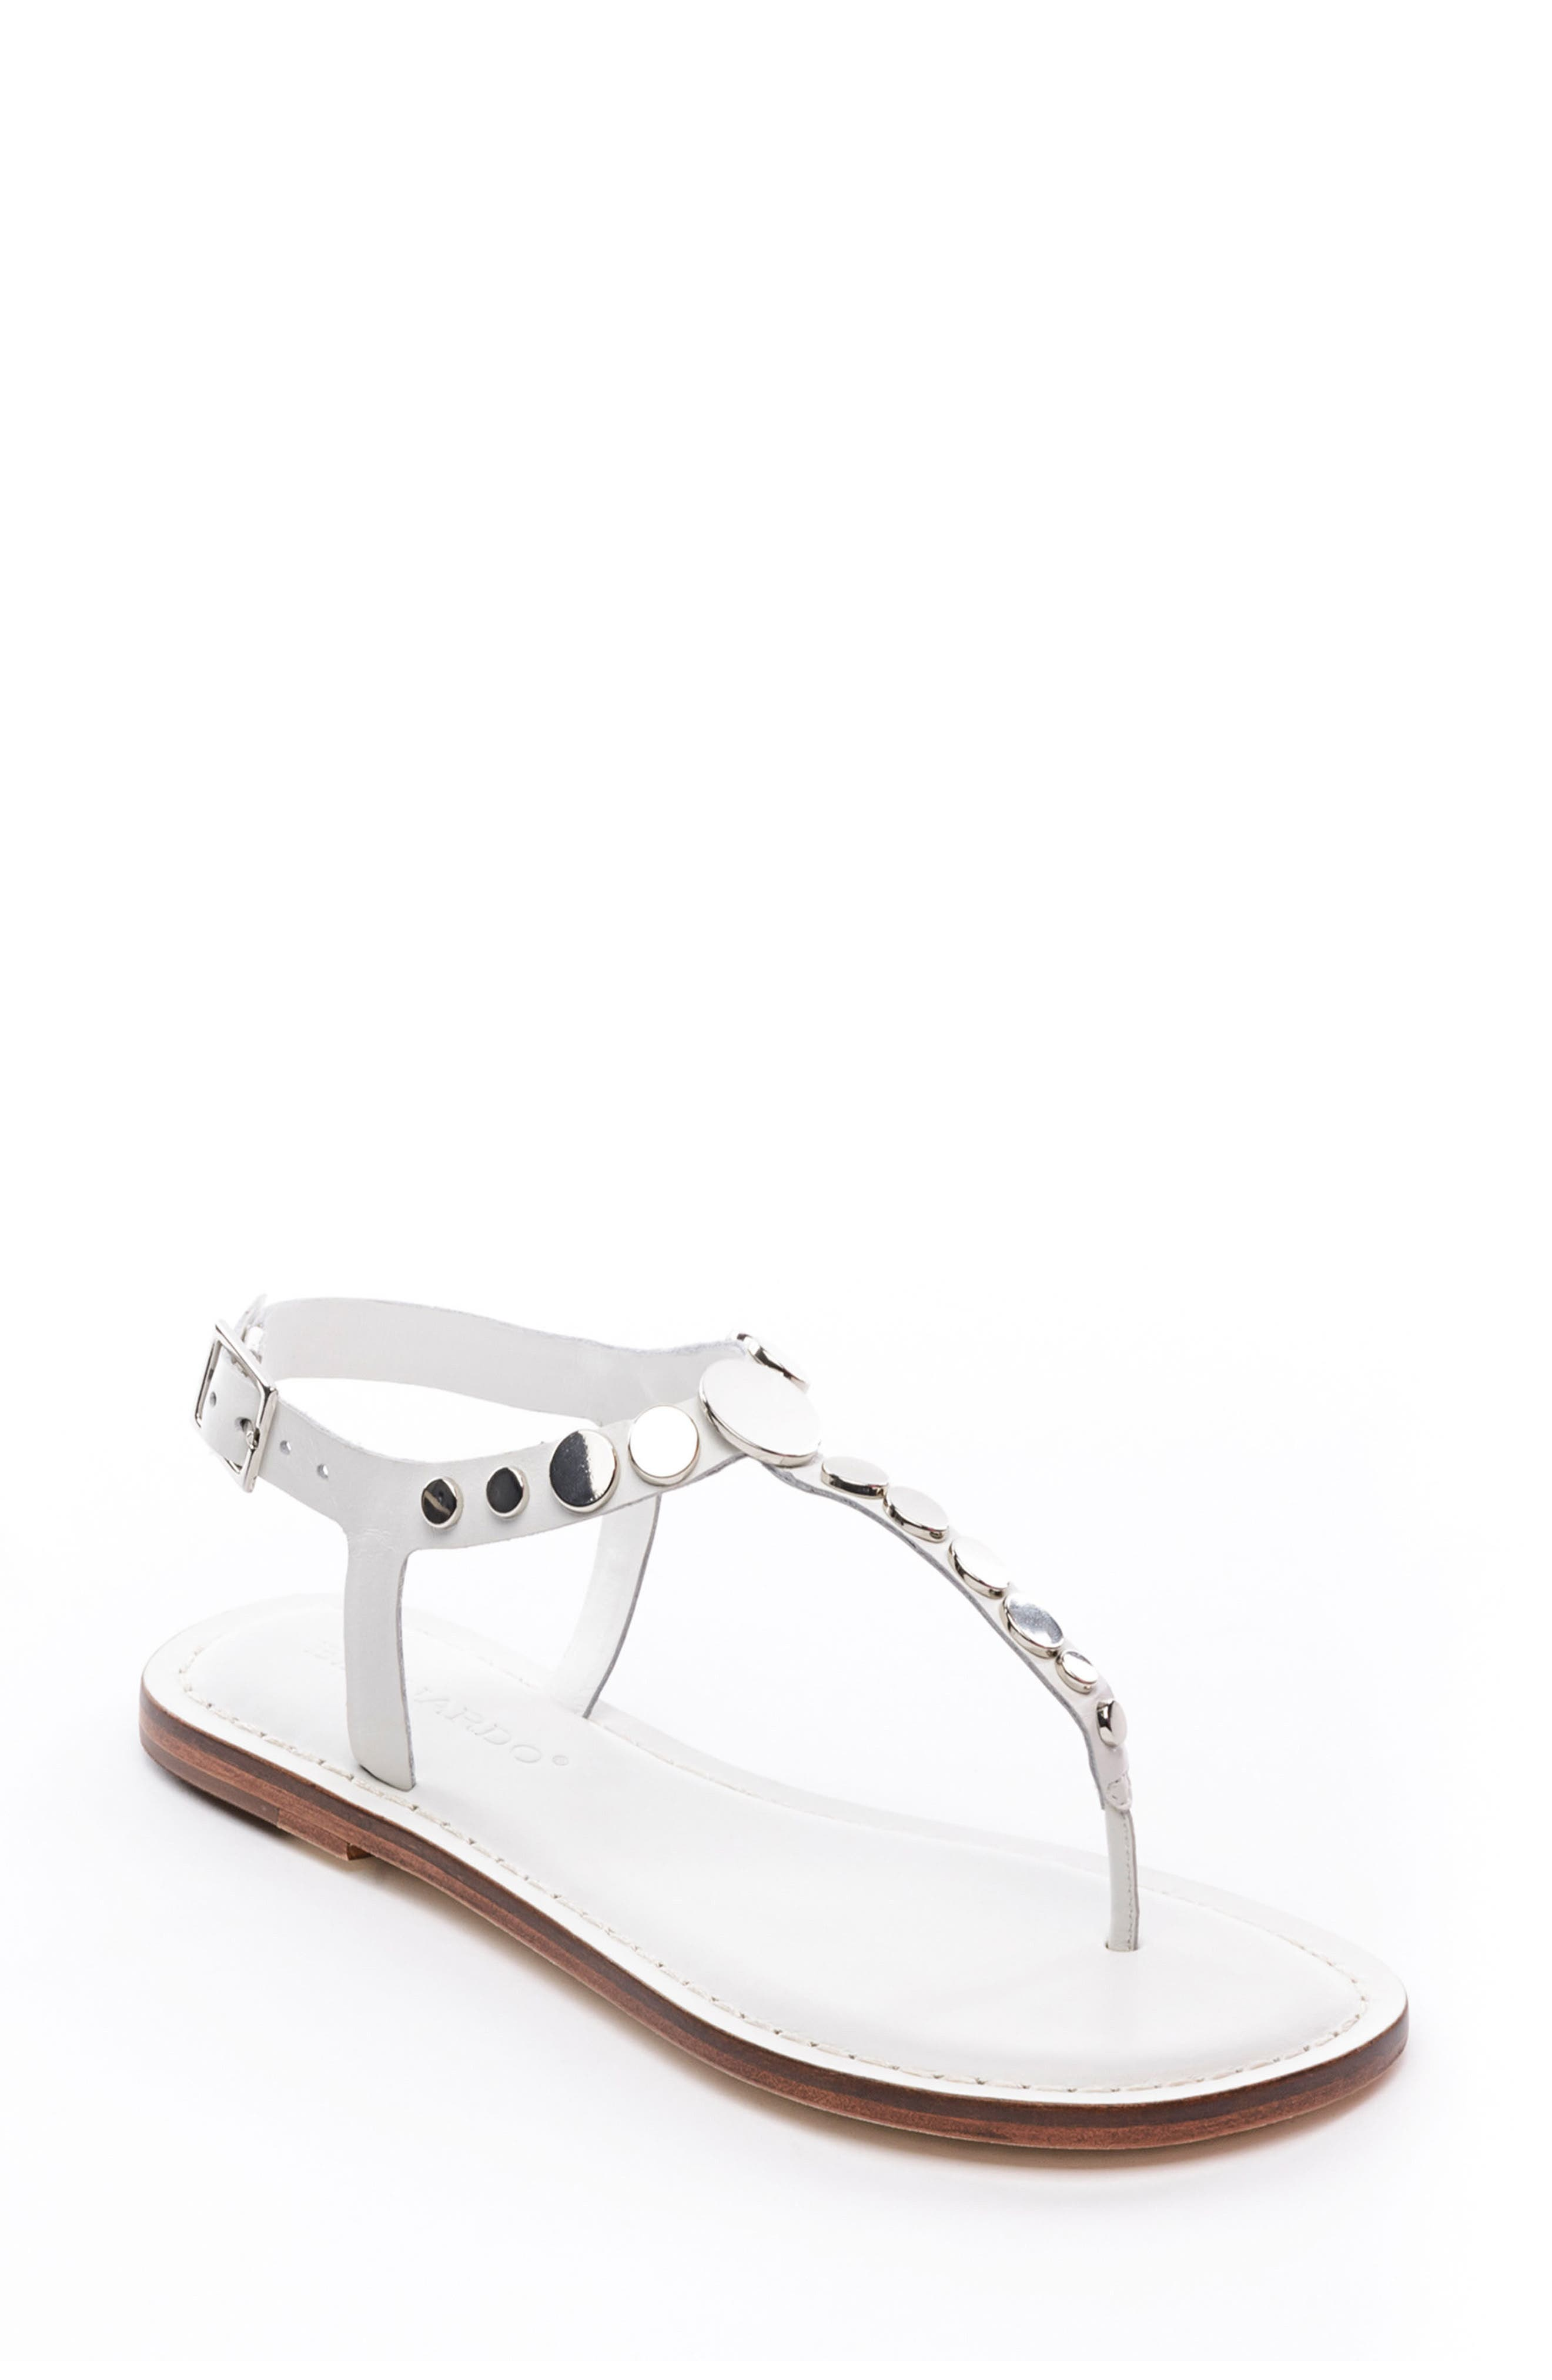 May Sandal,                             Main thumbnail 1, color,                             White Leather